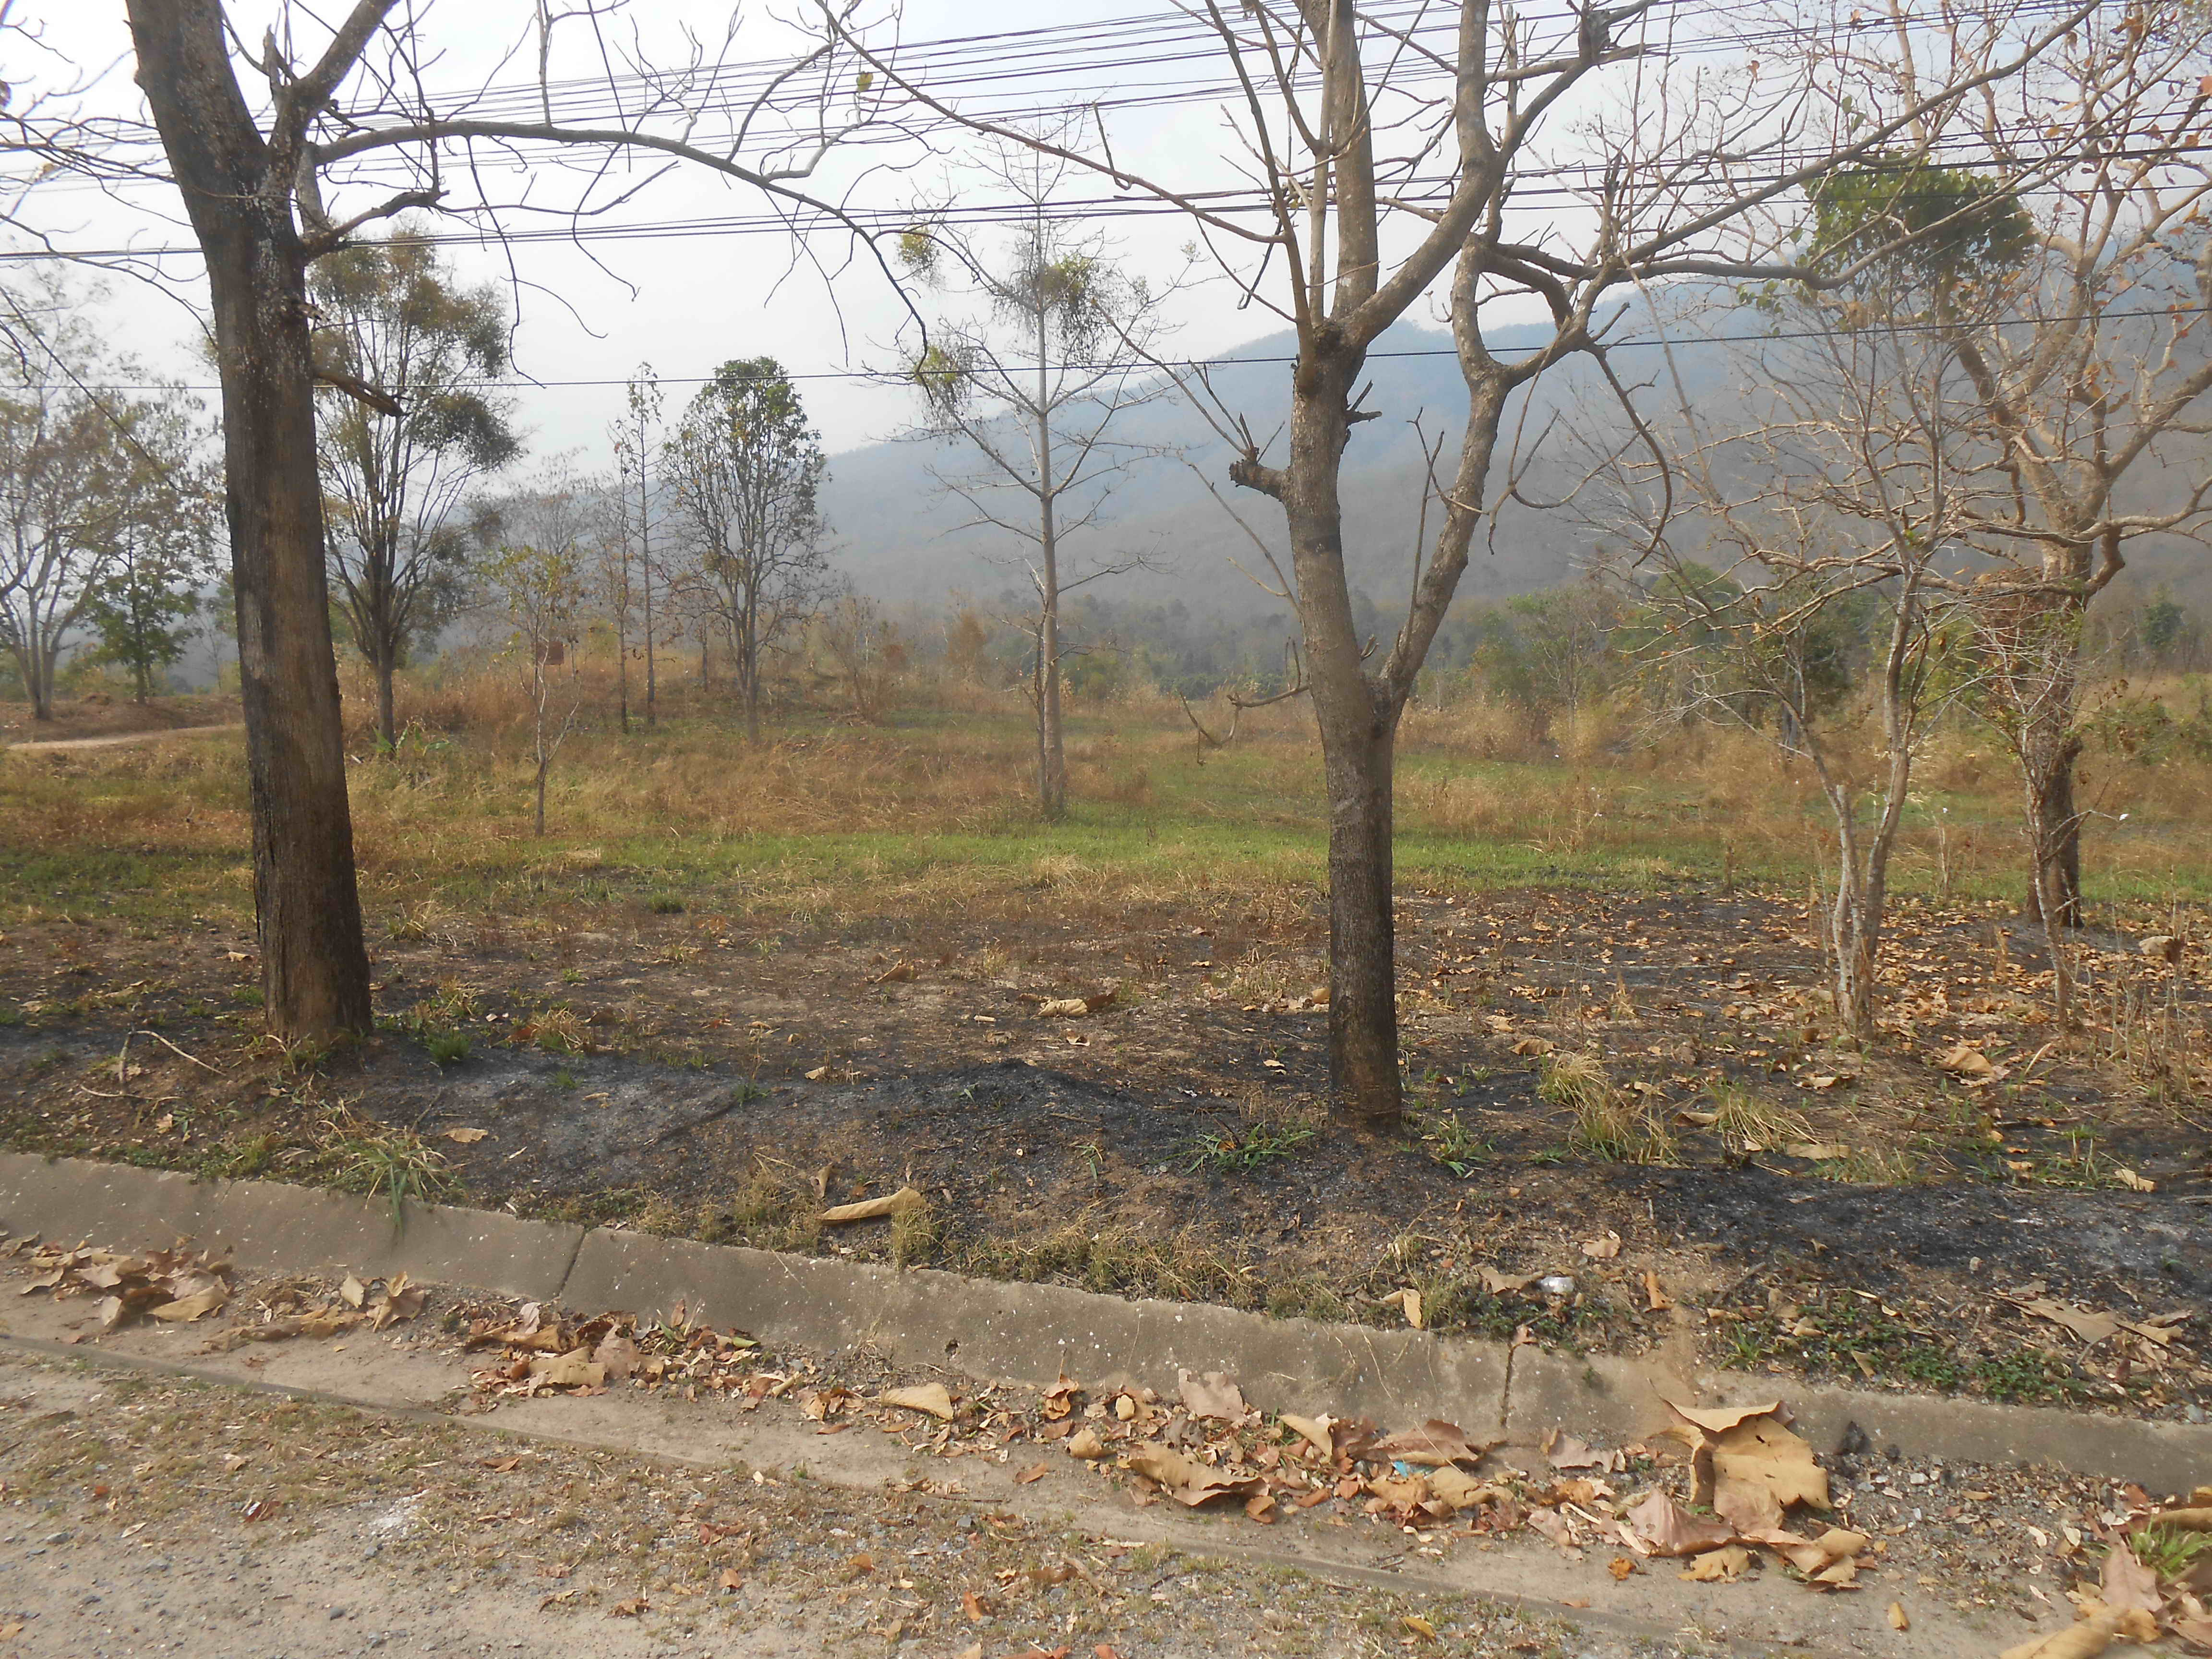 Army Land Mae Rim Burnt Greening